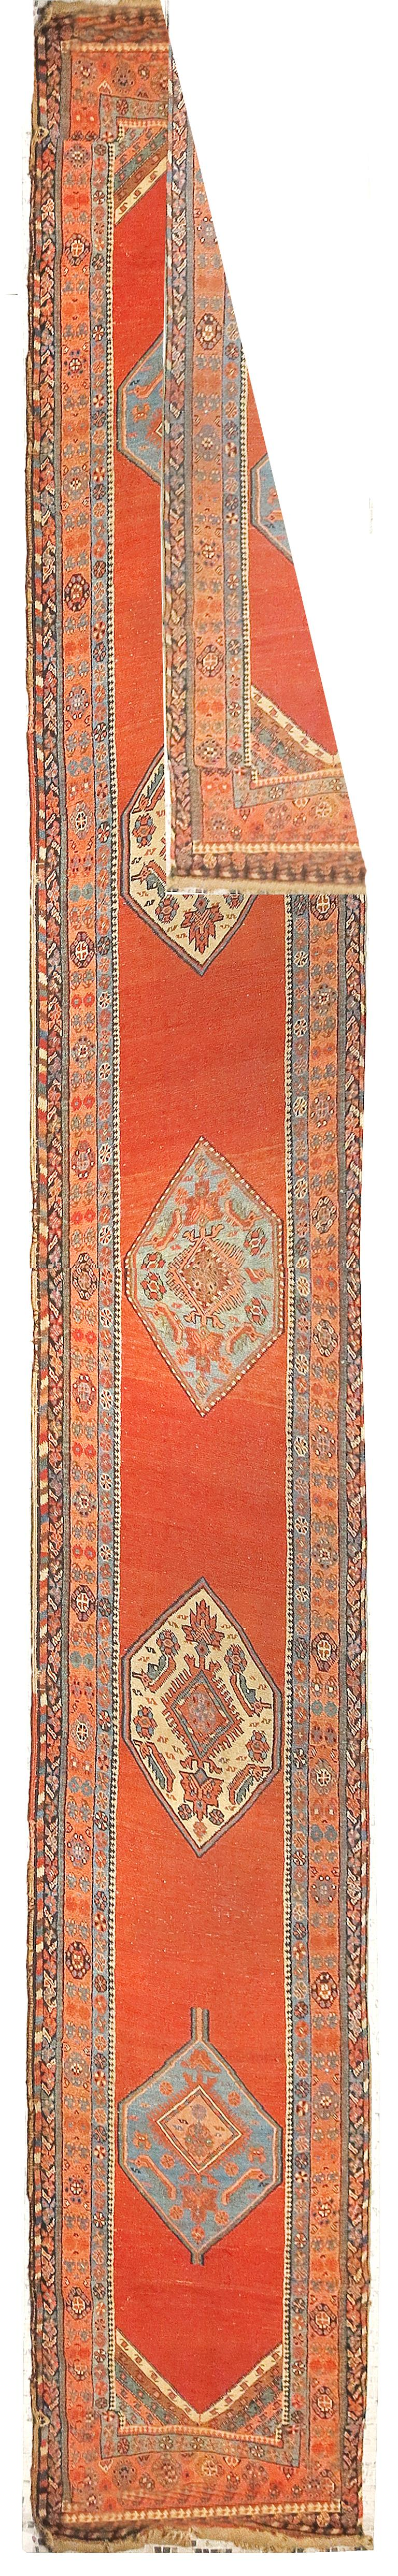 Fine antique Persian Bakshayesh Runner rug, hand knotted, circa 1890